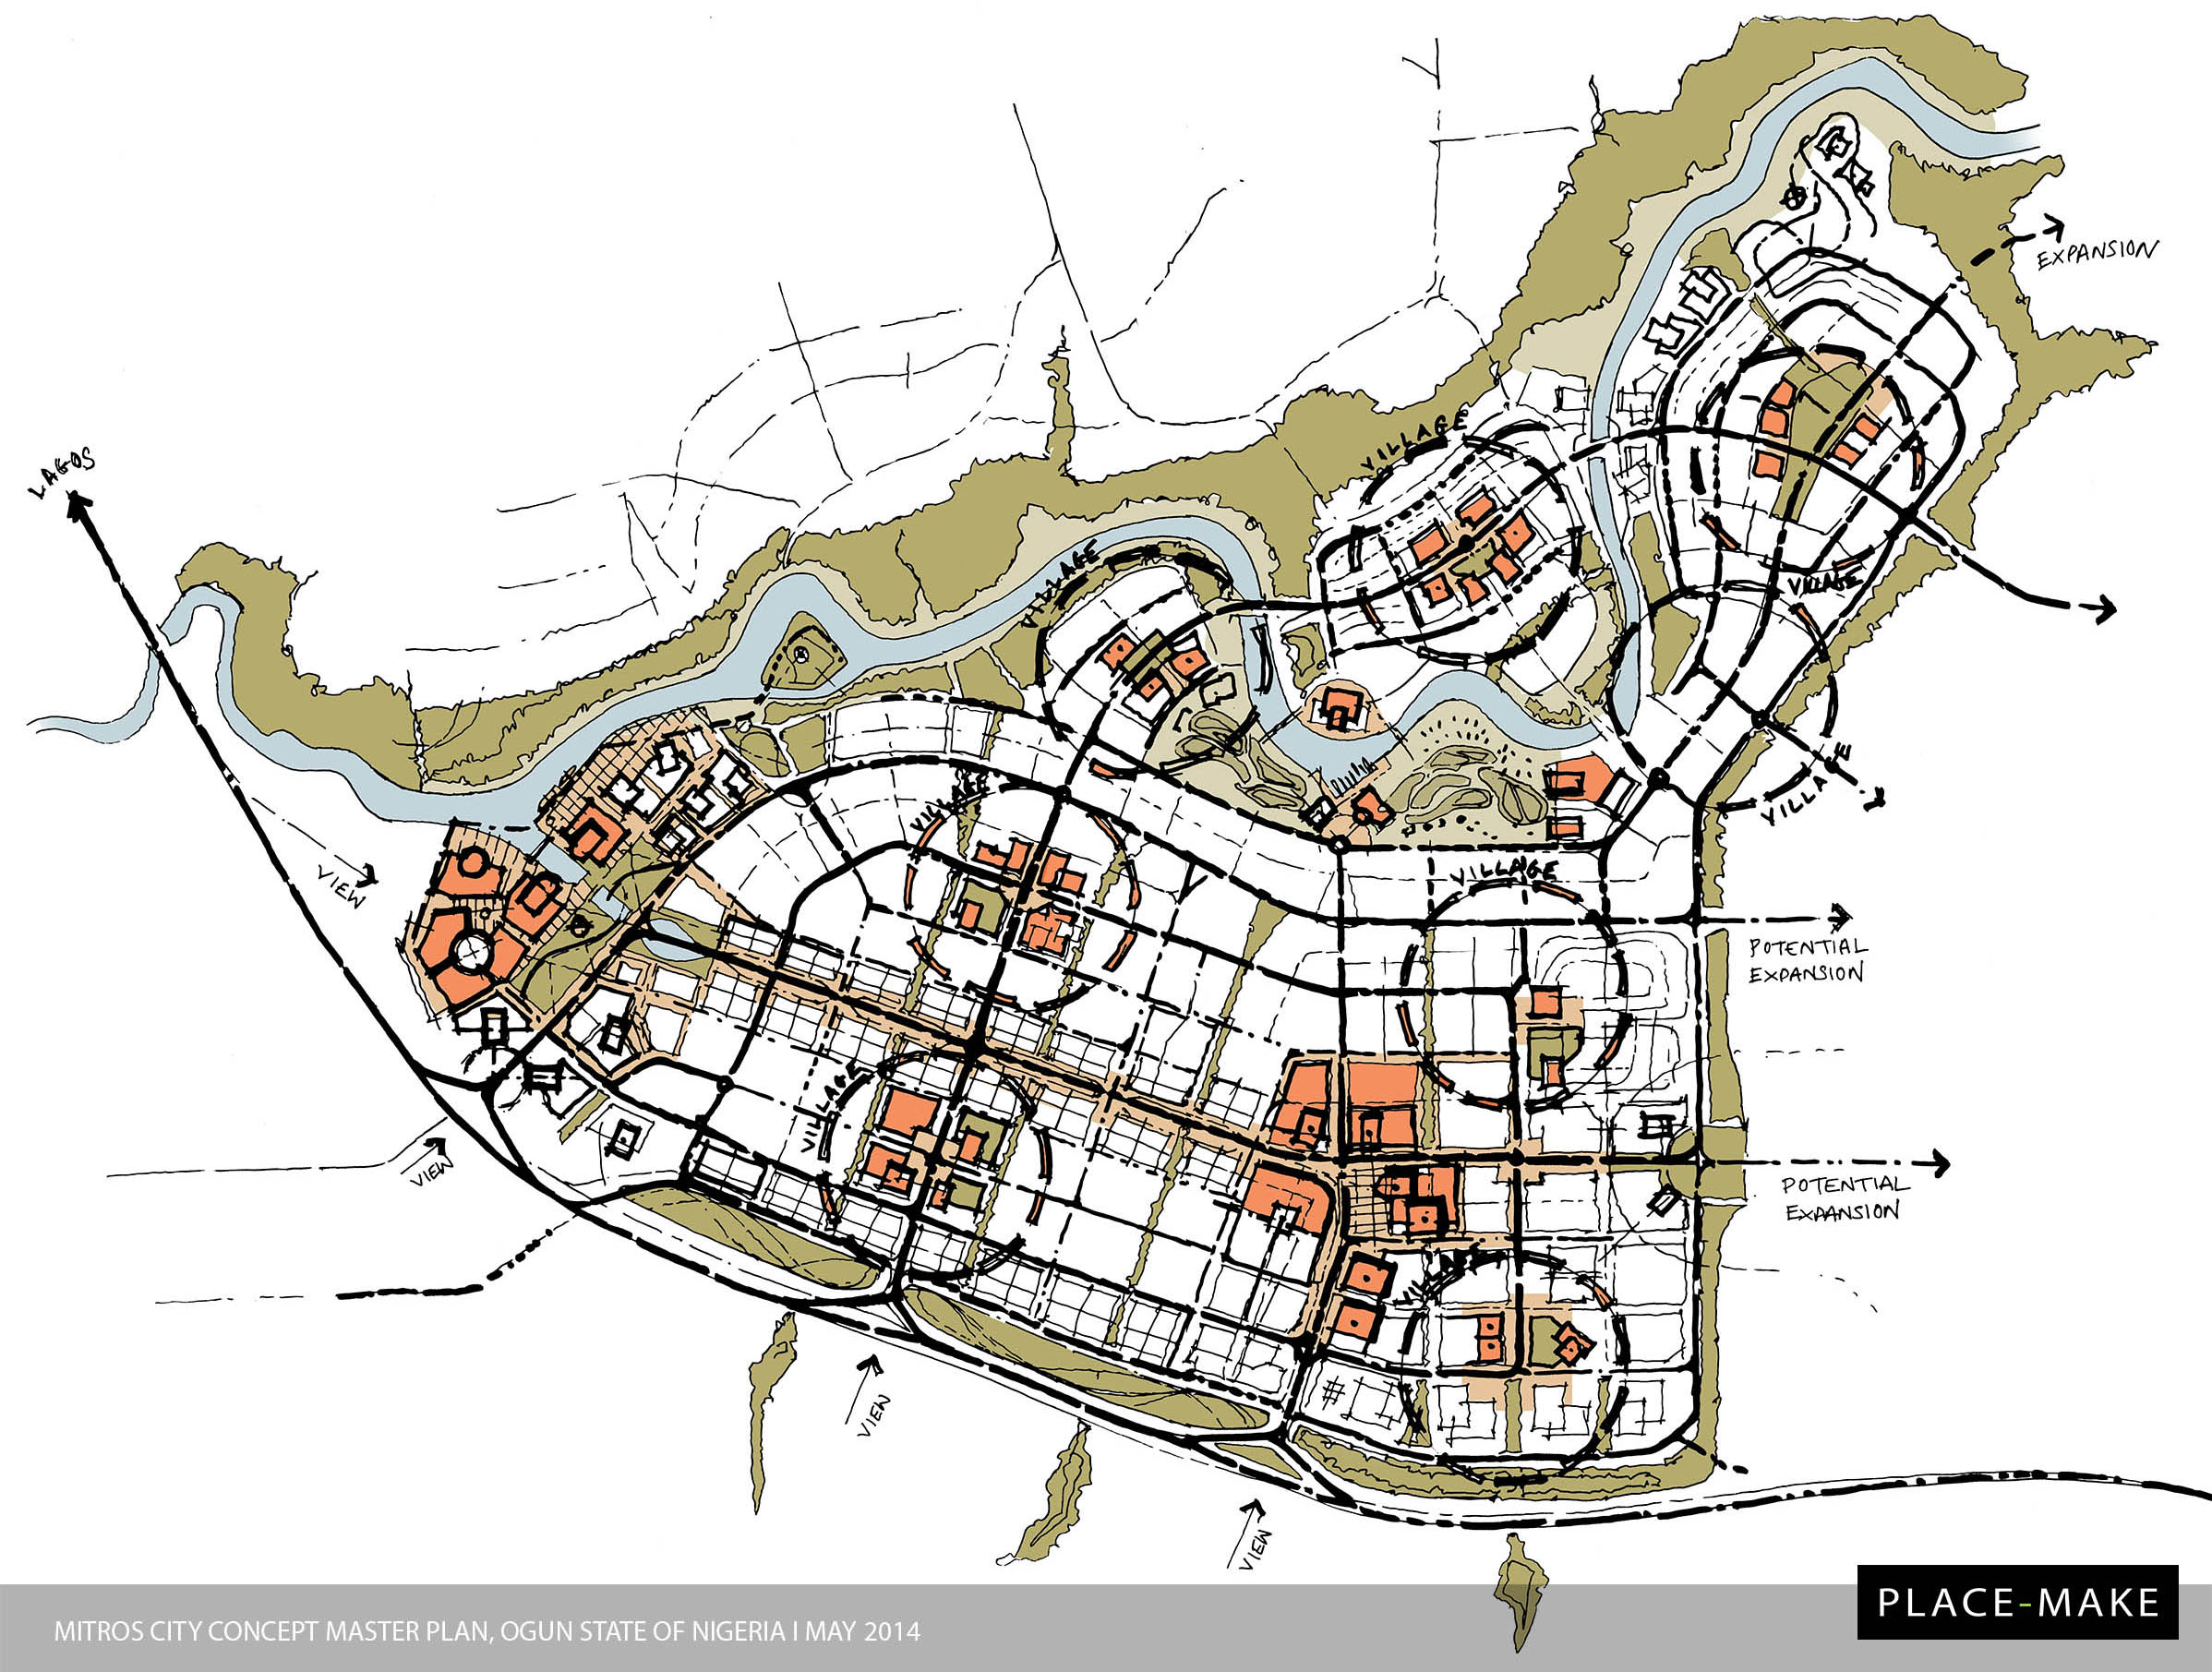 Mitros city concept master plan presentation for Concept design and planning